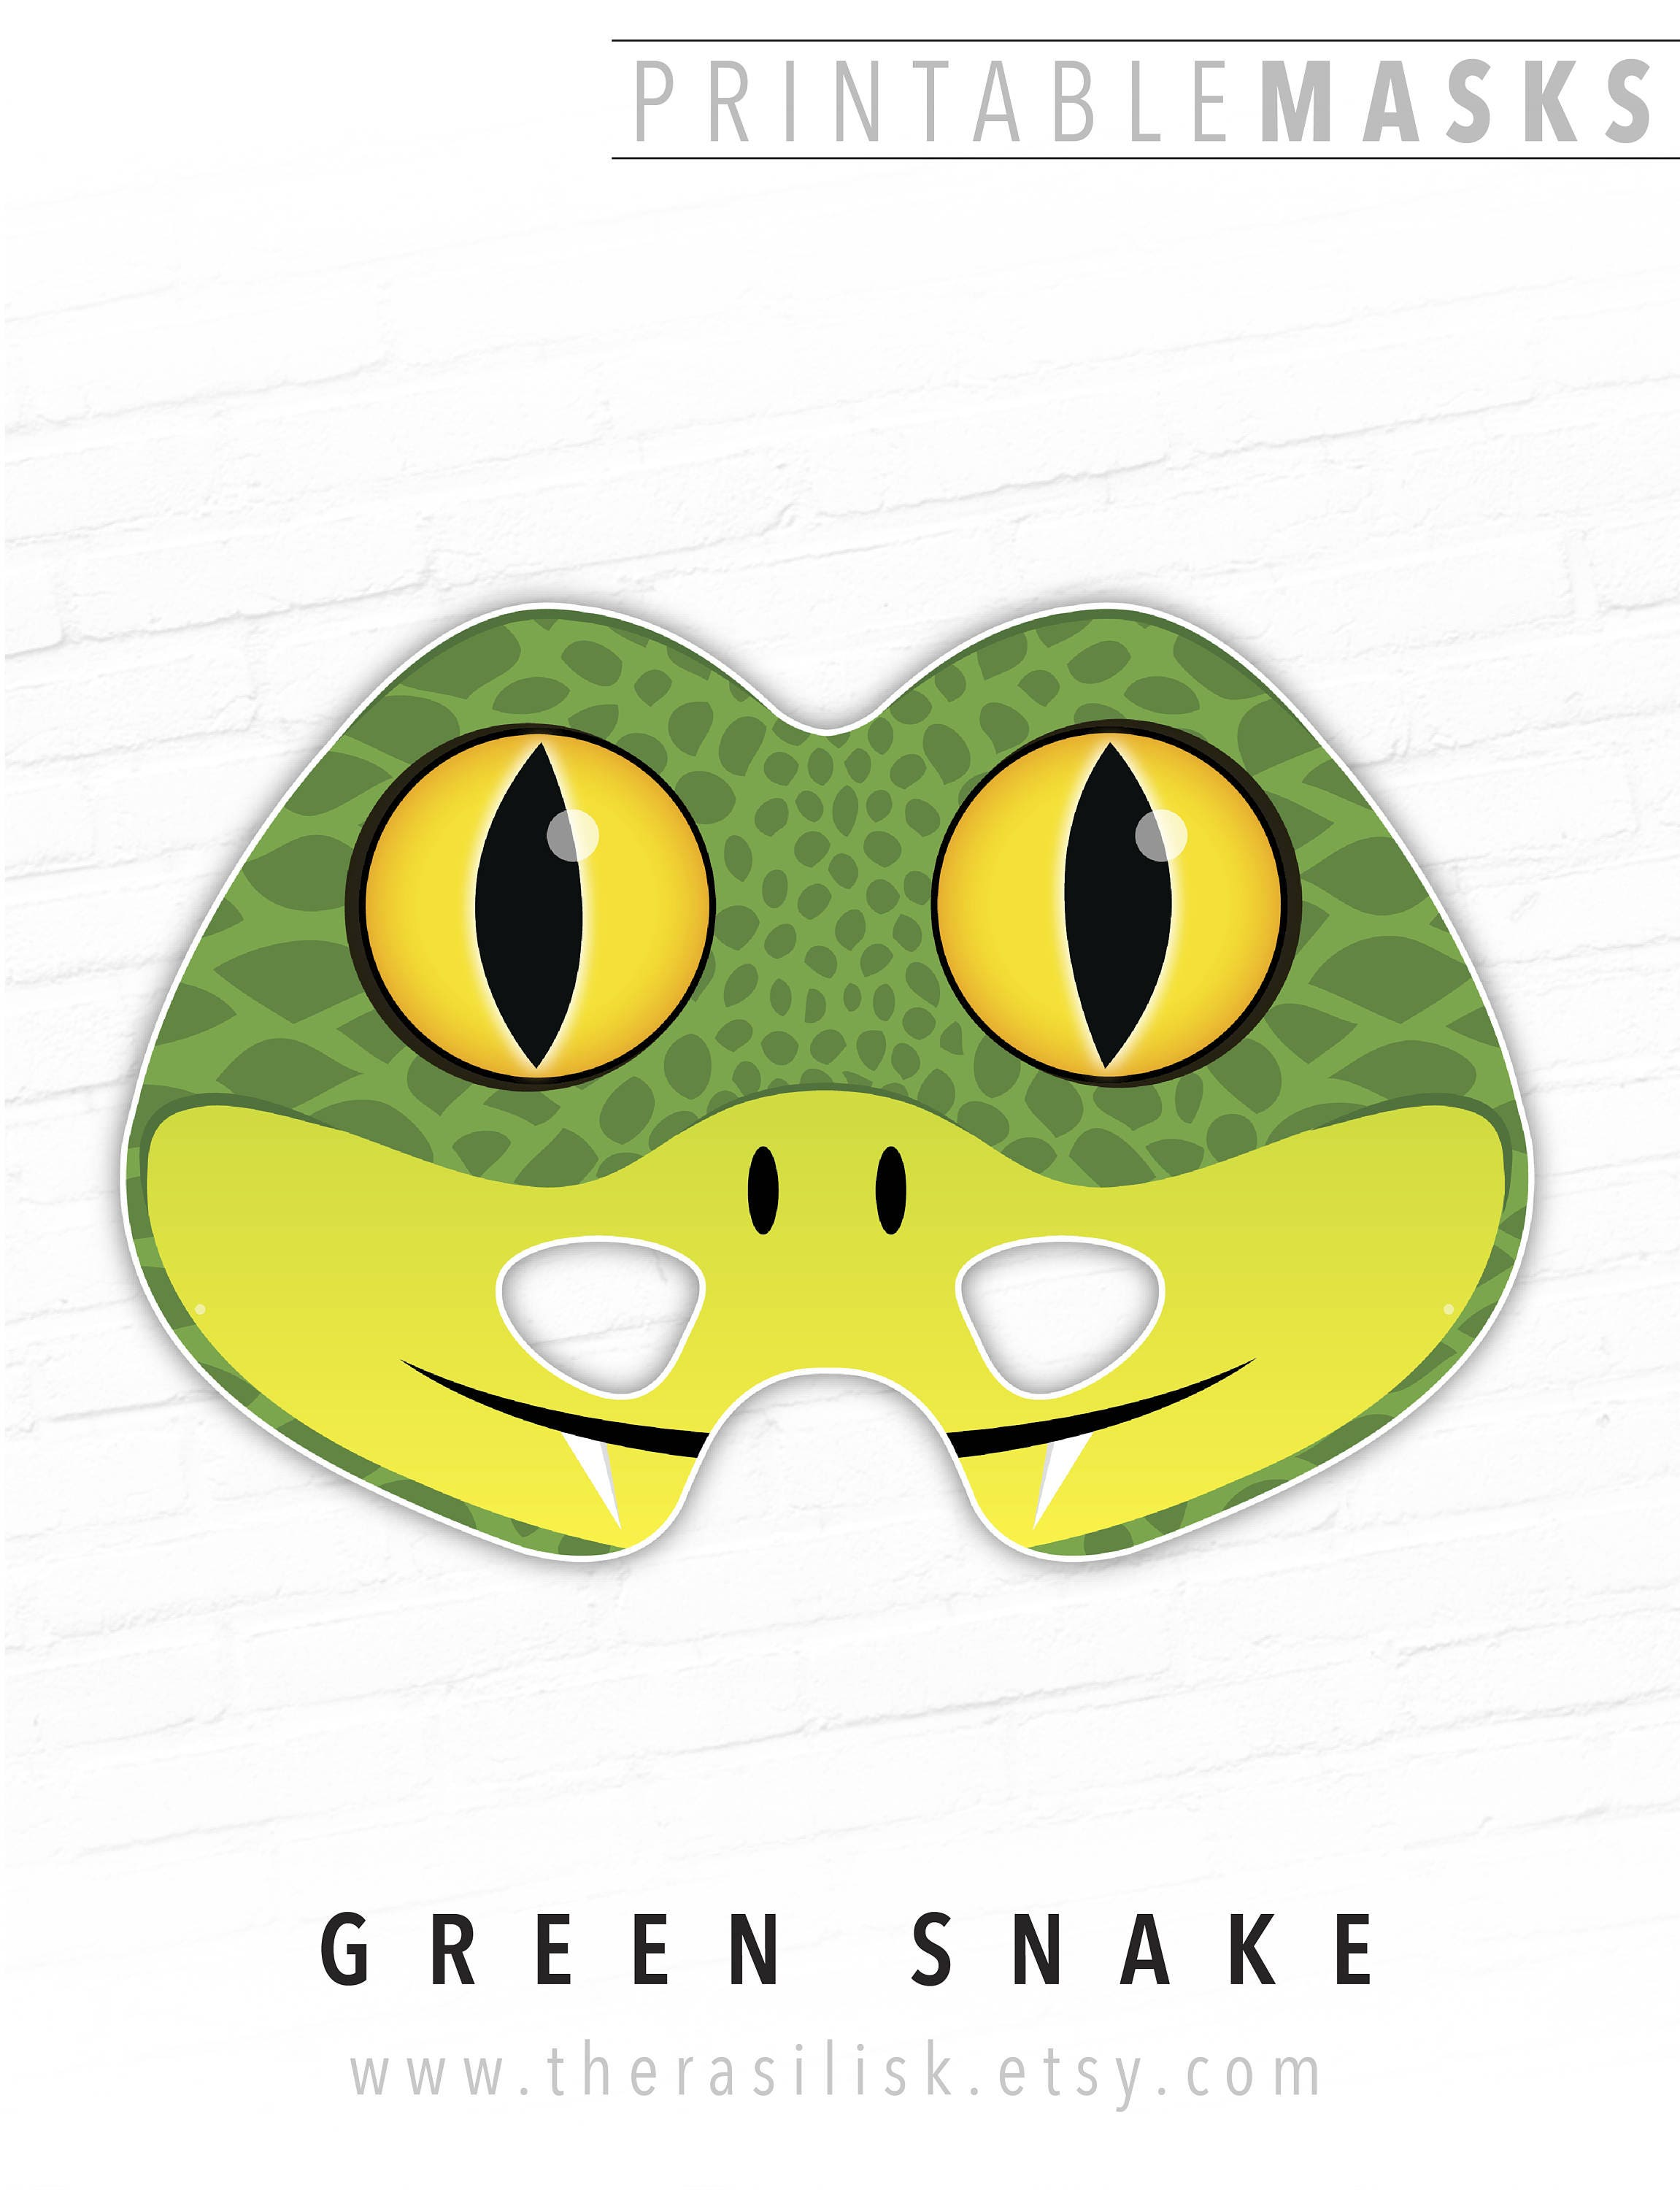 Outstanding snake mask template frieze professional resume nice minion mask template images gallery 3 little pigs mask maxwellsz